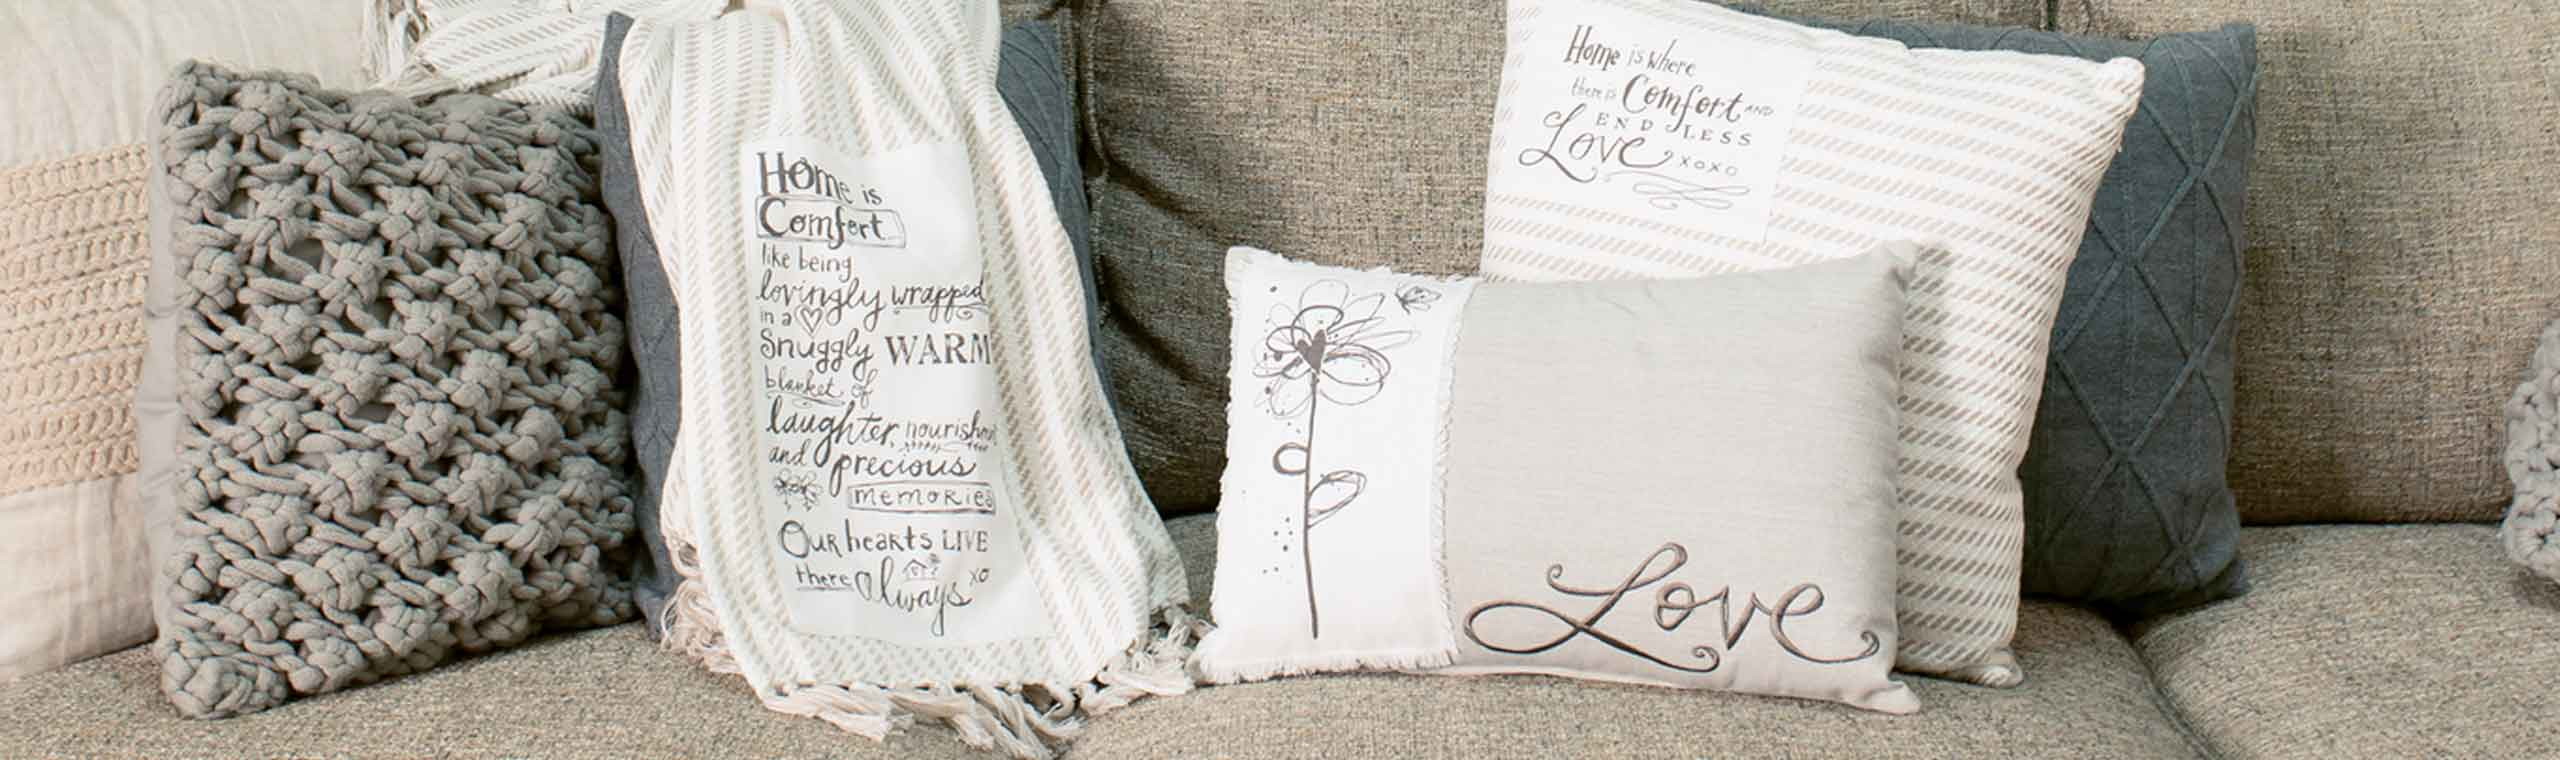 Make Bonding even Sweeter! a small white blanket with a quote on it